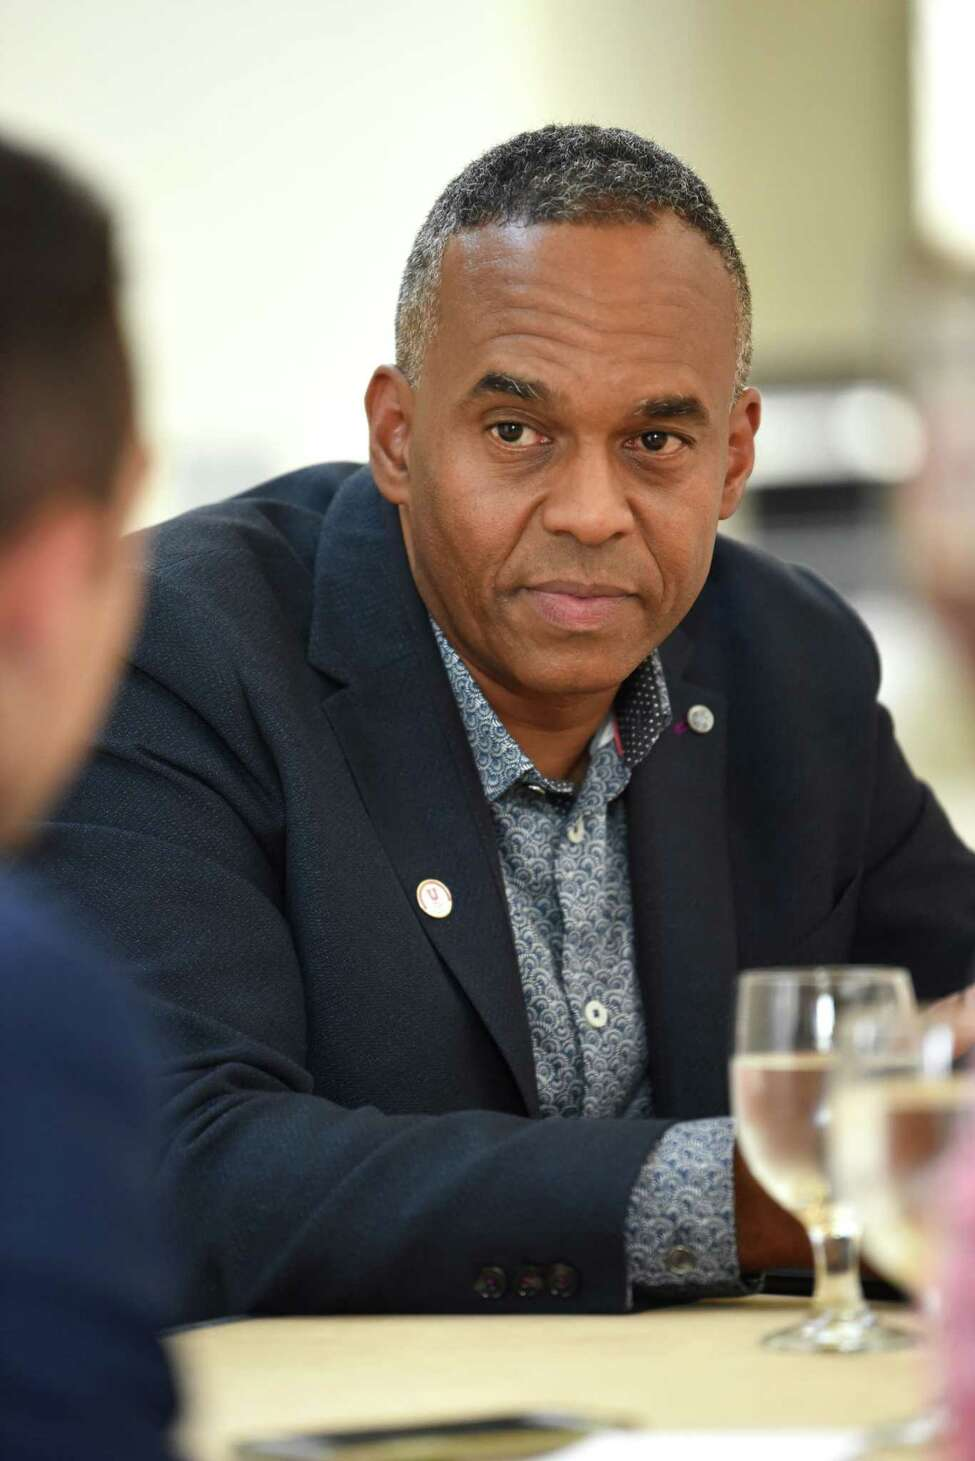 Newly appointed Union College President David Harris is interviewed at Union College on Thursday, July 26, 2018 in Schenectady, N.Y. (Lori Van Buren/Times Union)